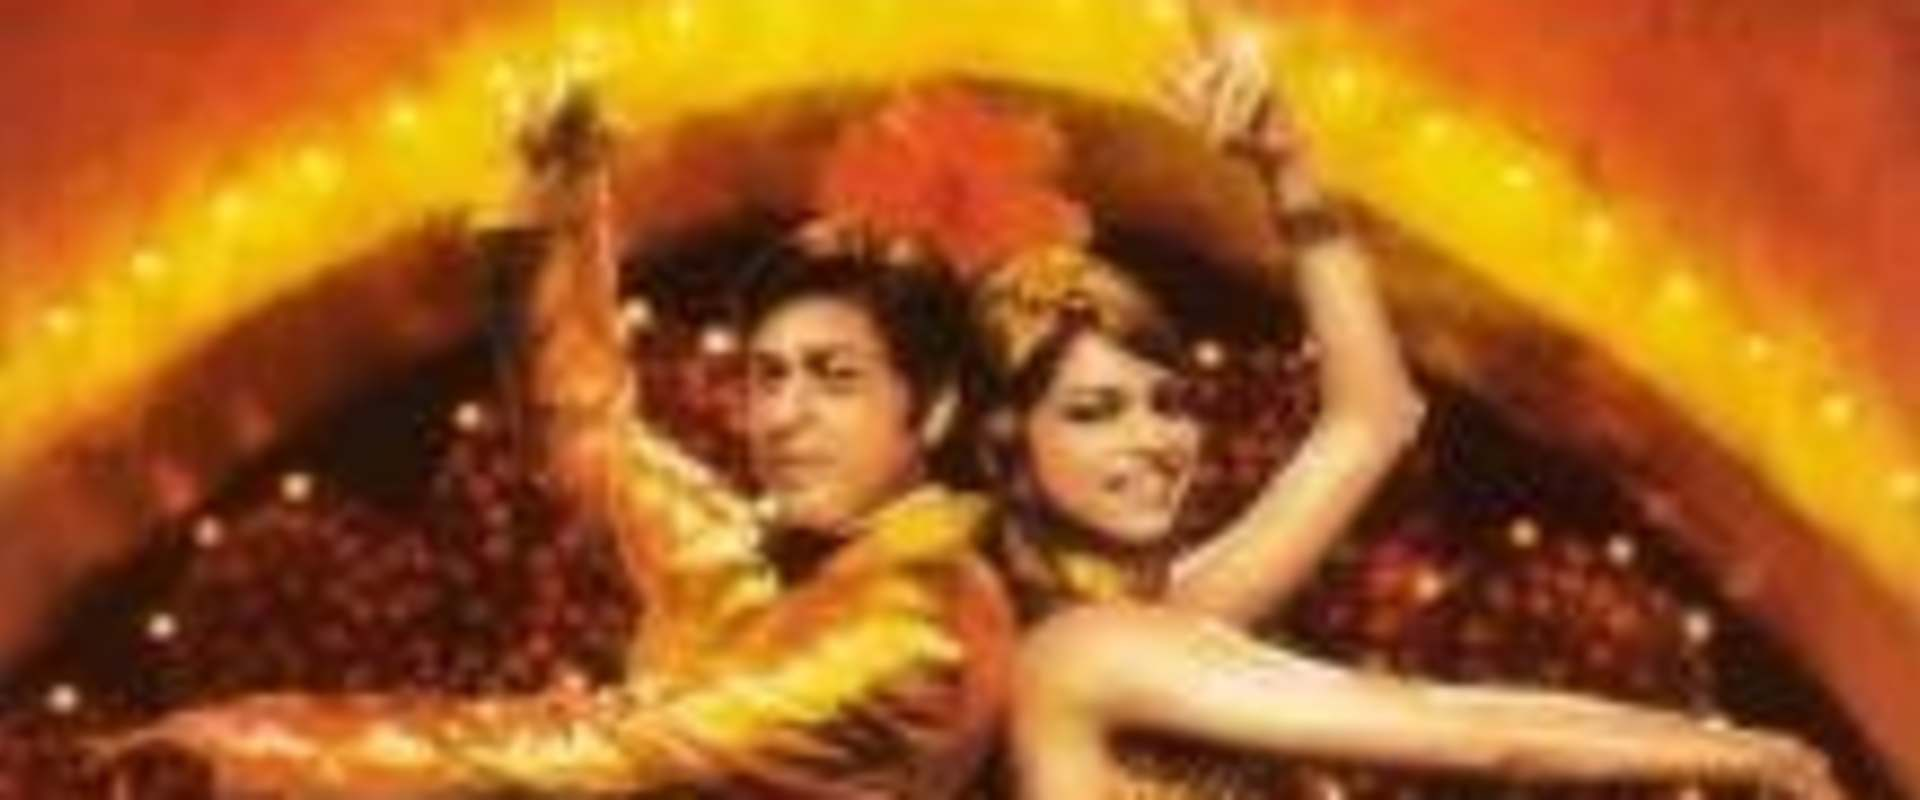 Om Shanti Om background 1